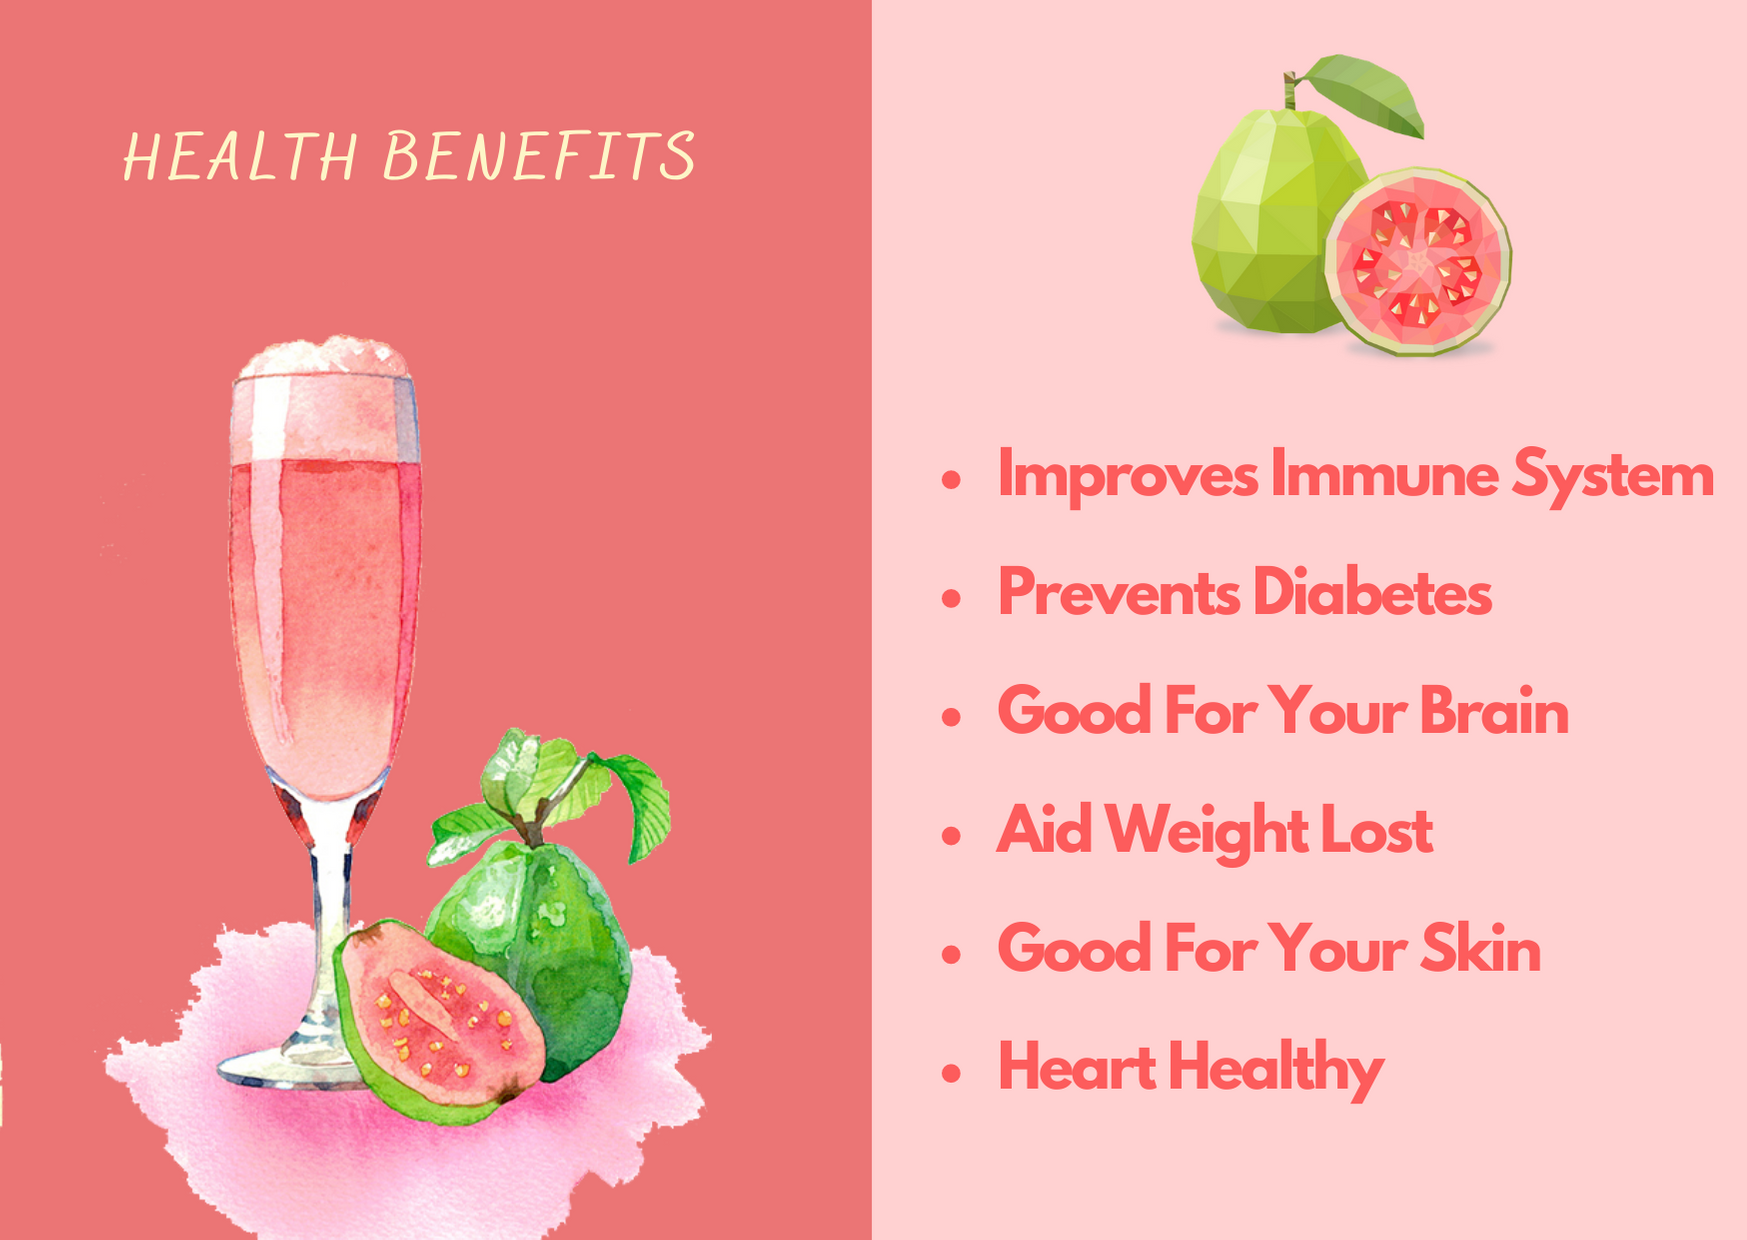 Benefits Of Guava Fruit And Leaves